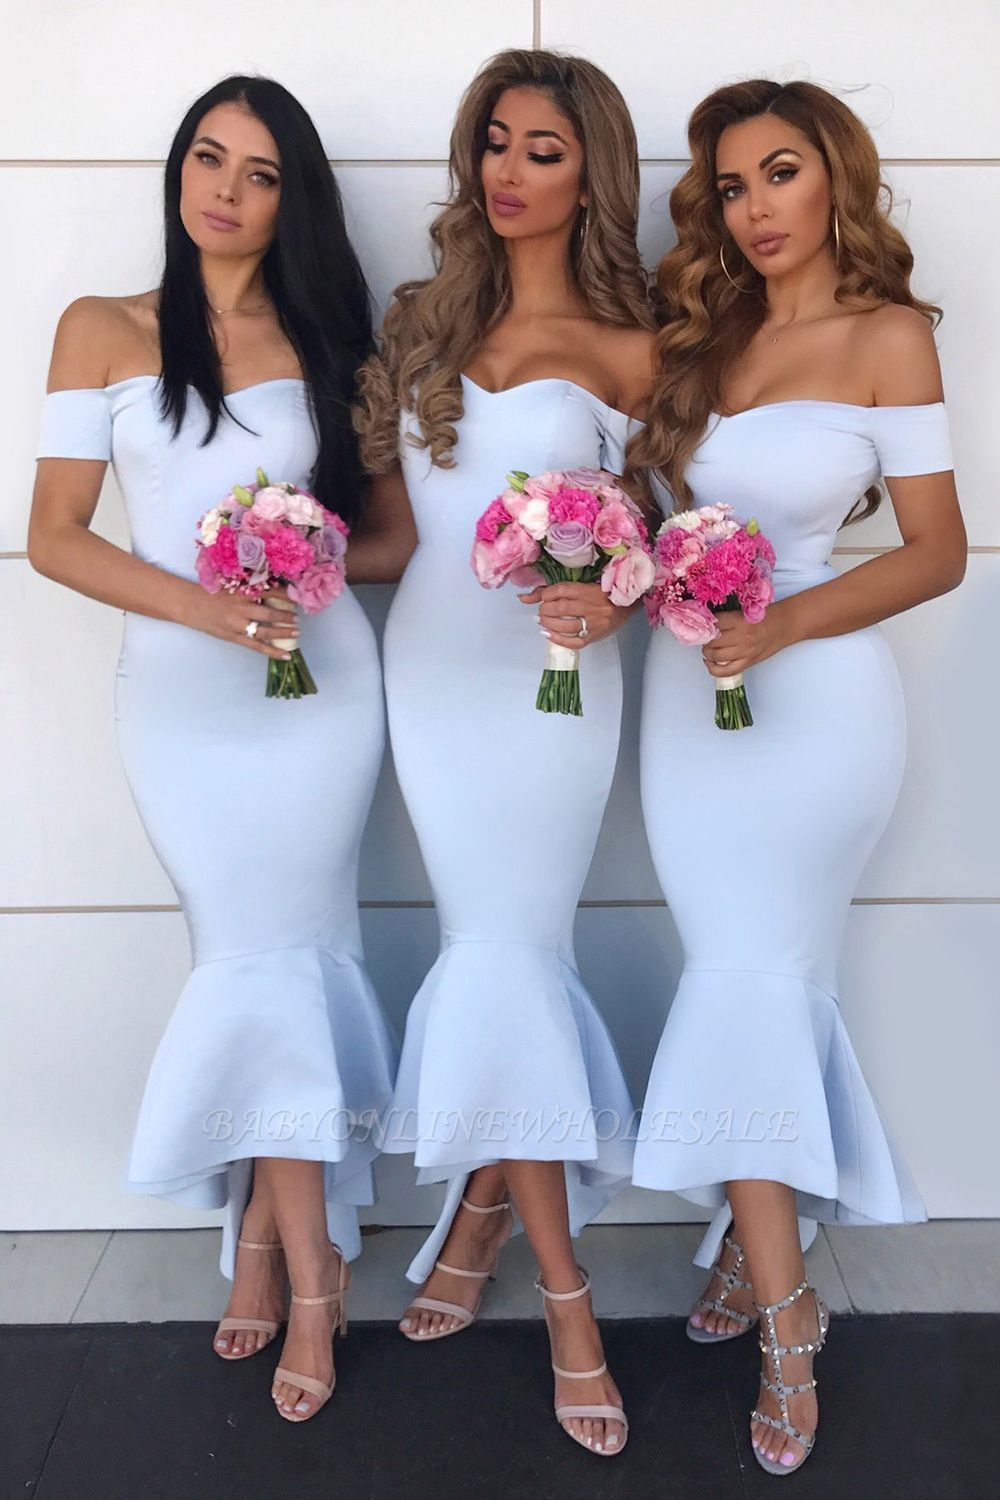 Sexy Open Back Sweetheart Neckline Meimaid Bridesmaid Dresses |Off-shoulder Ankle Length Wedding Party Gowns